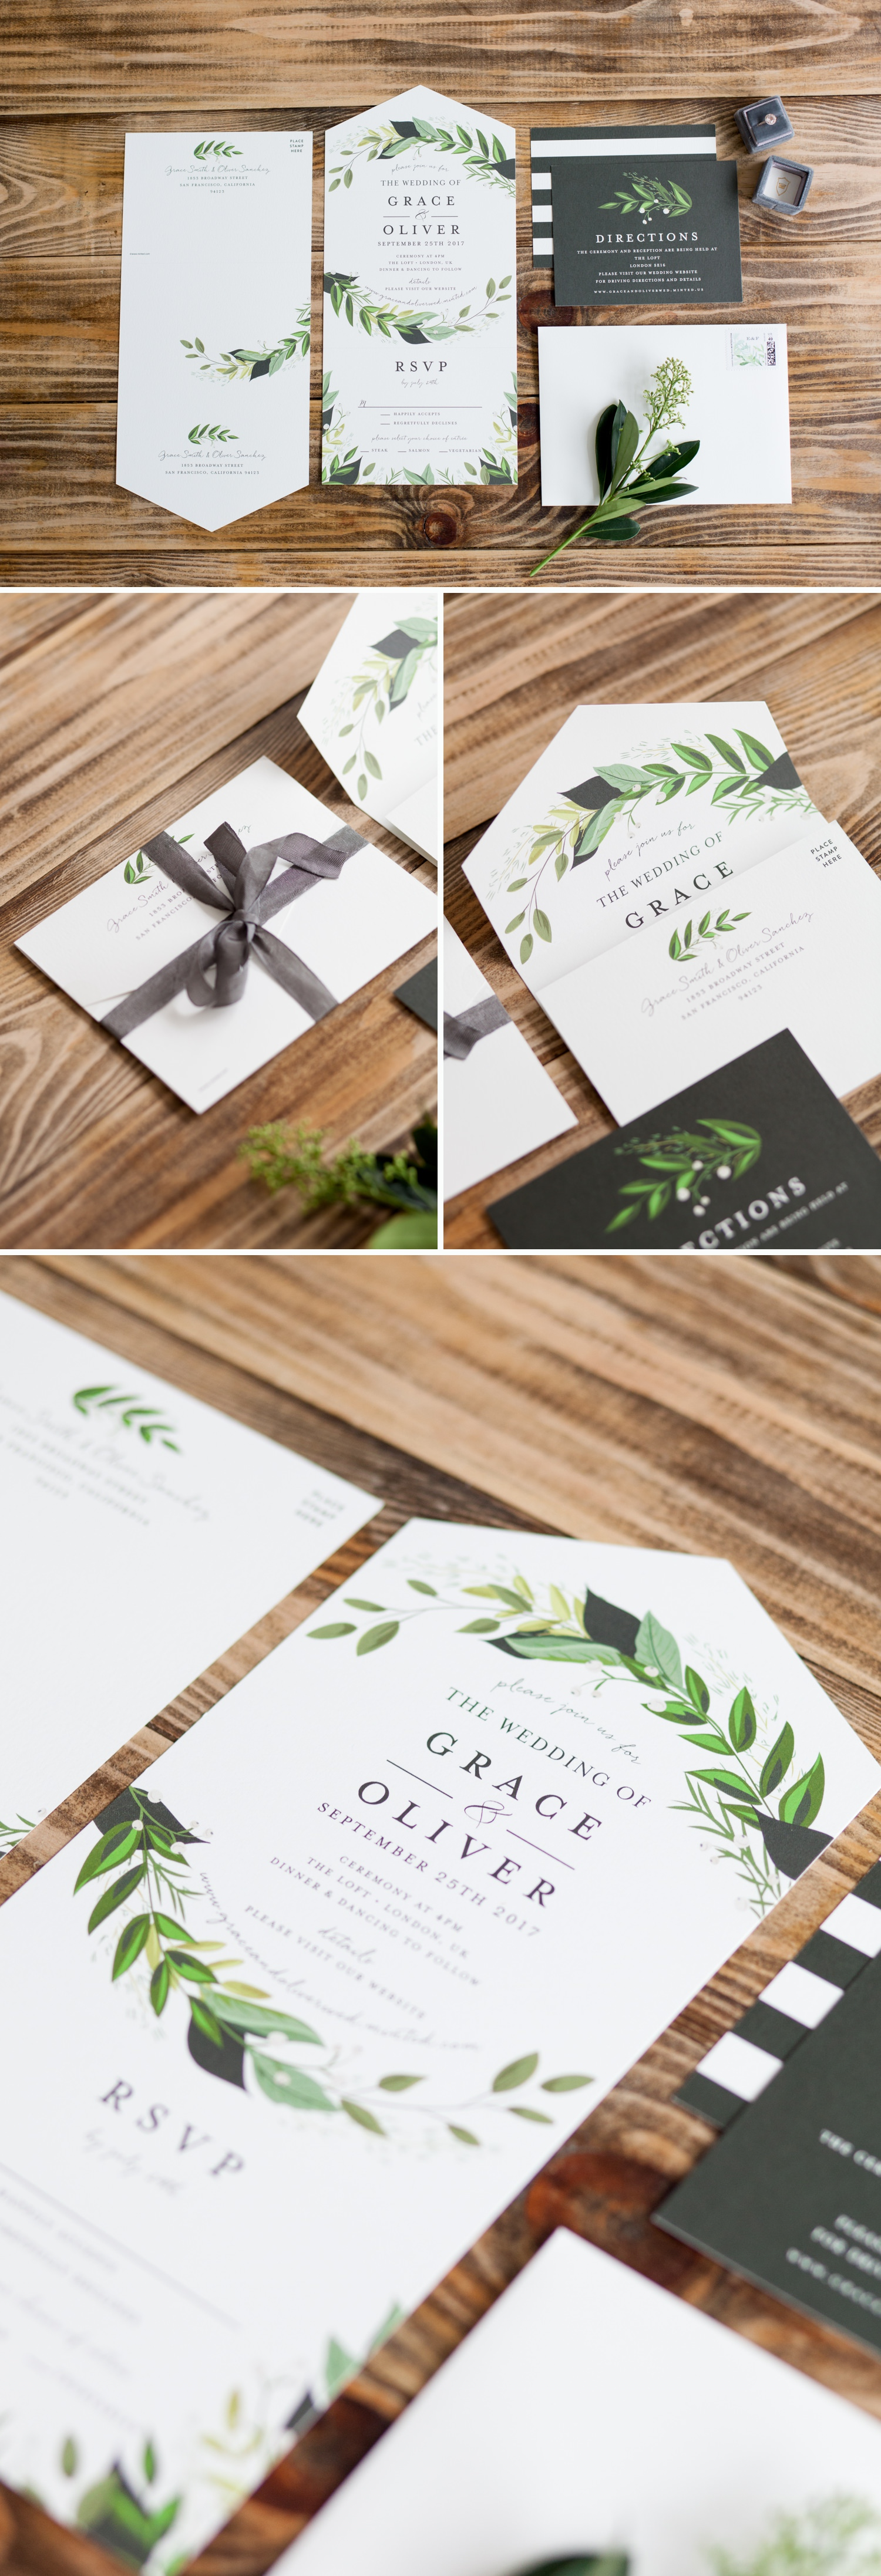 London Warehouse Wedding 10 - a black and green stationery suite